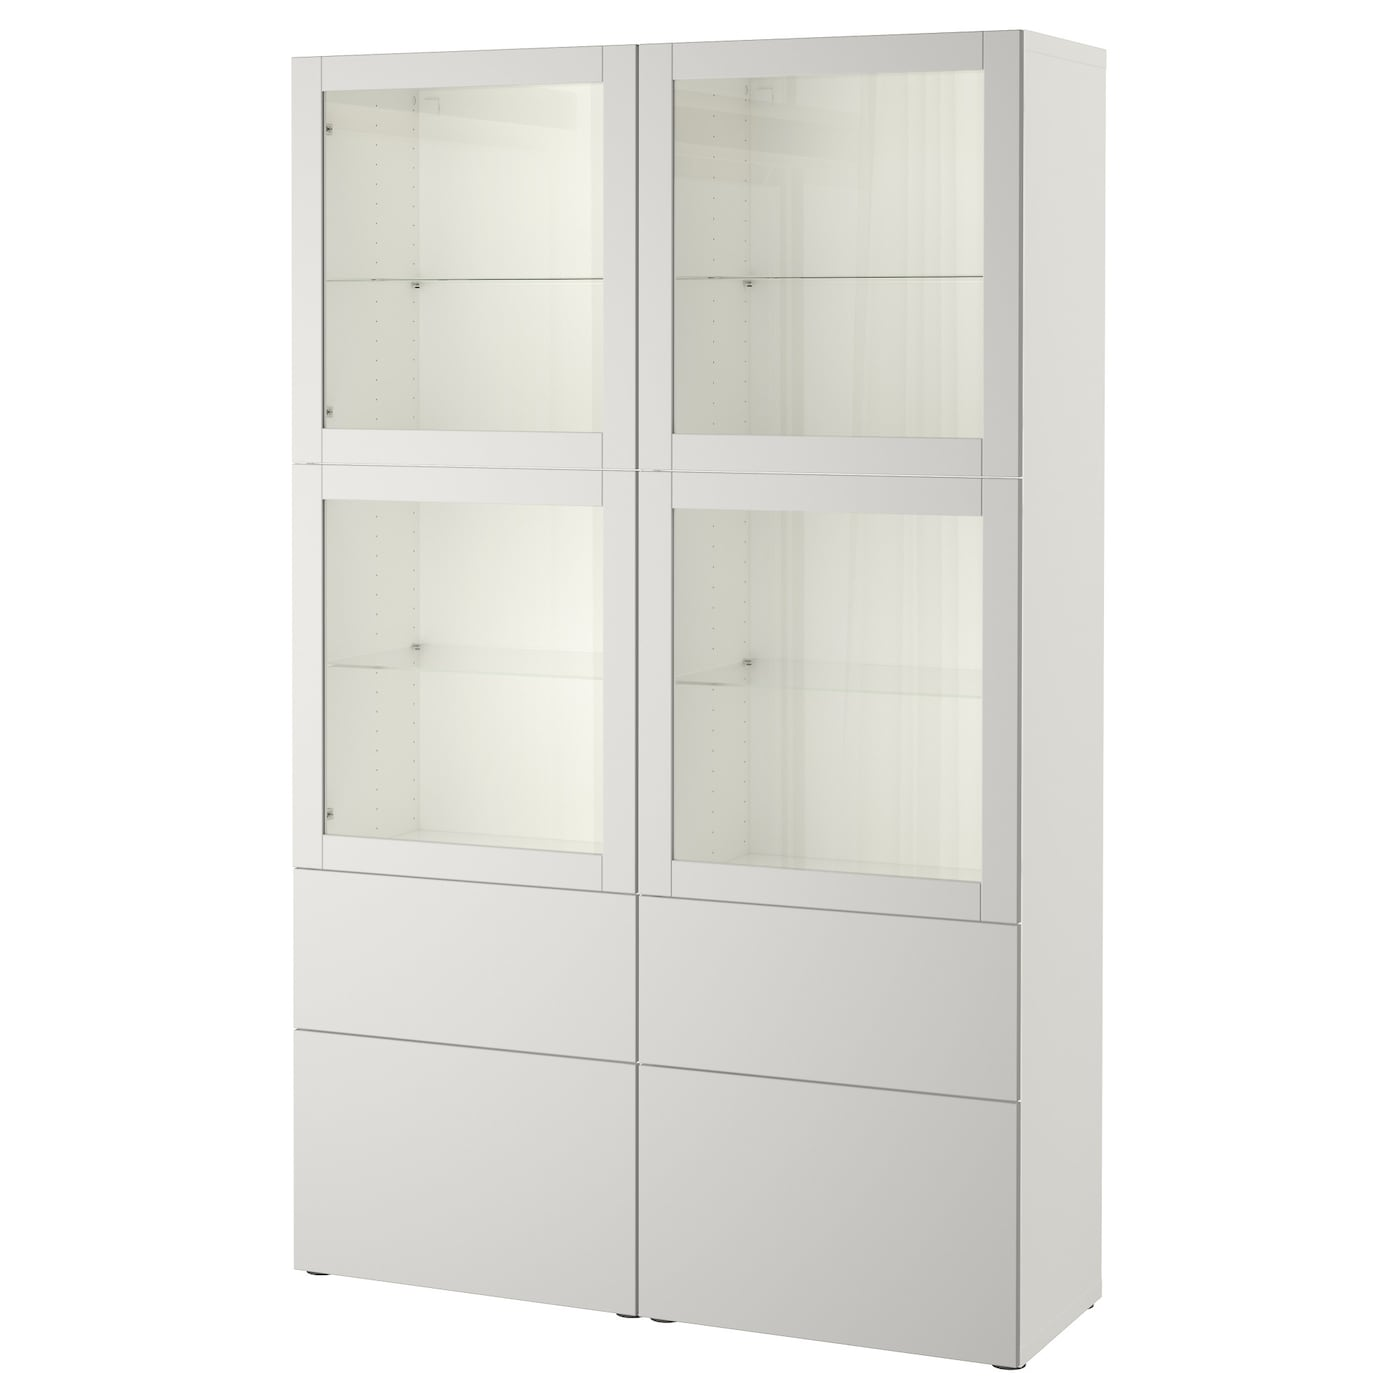 IKEA BESTÅ storage combination w glass doors  sc 1 st  Ikea : besta dvd storage  - Aquiesqueretaro.Com